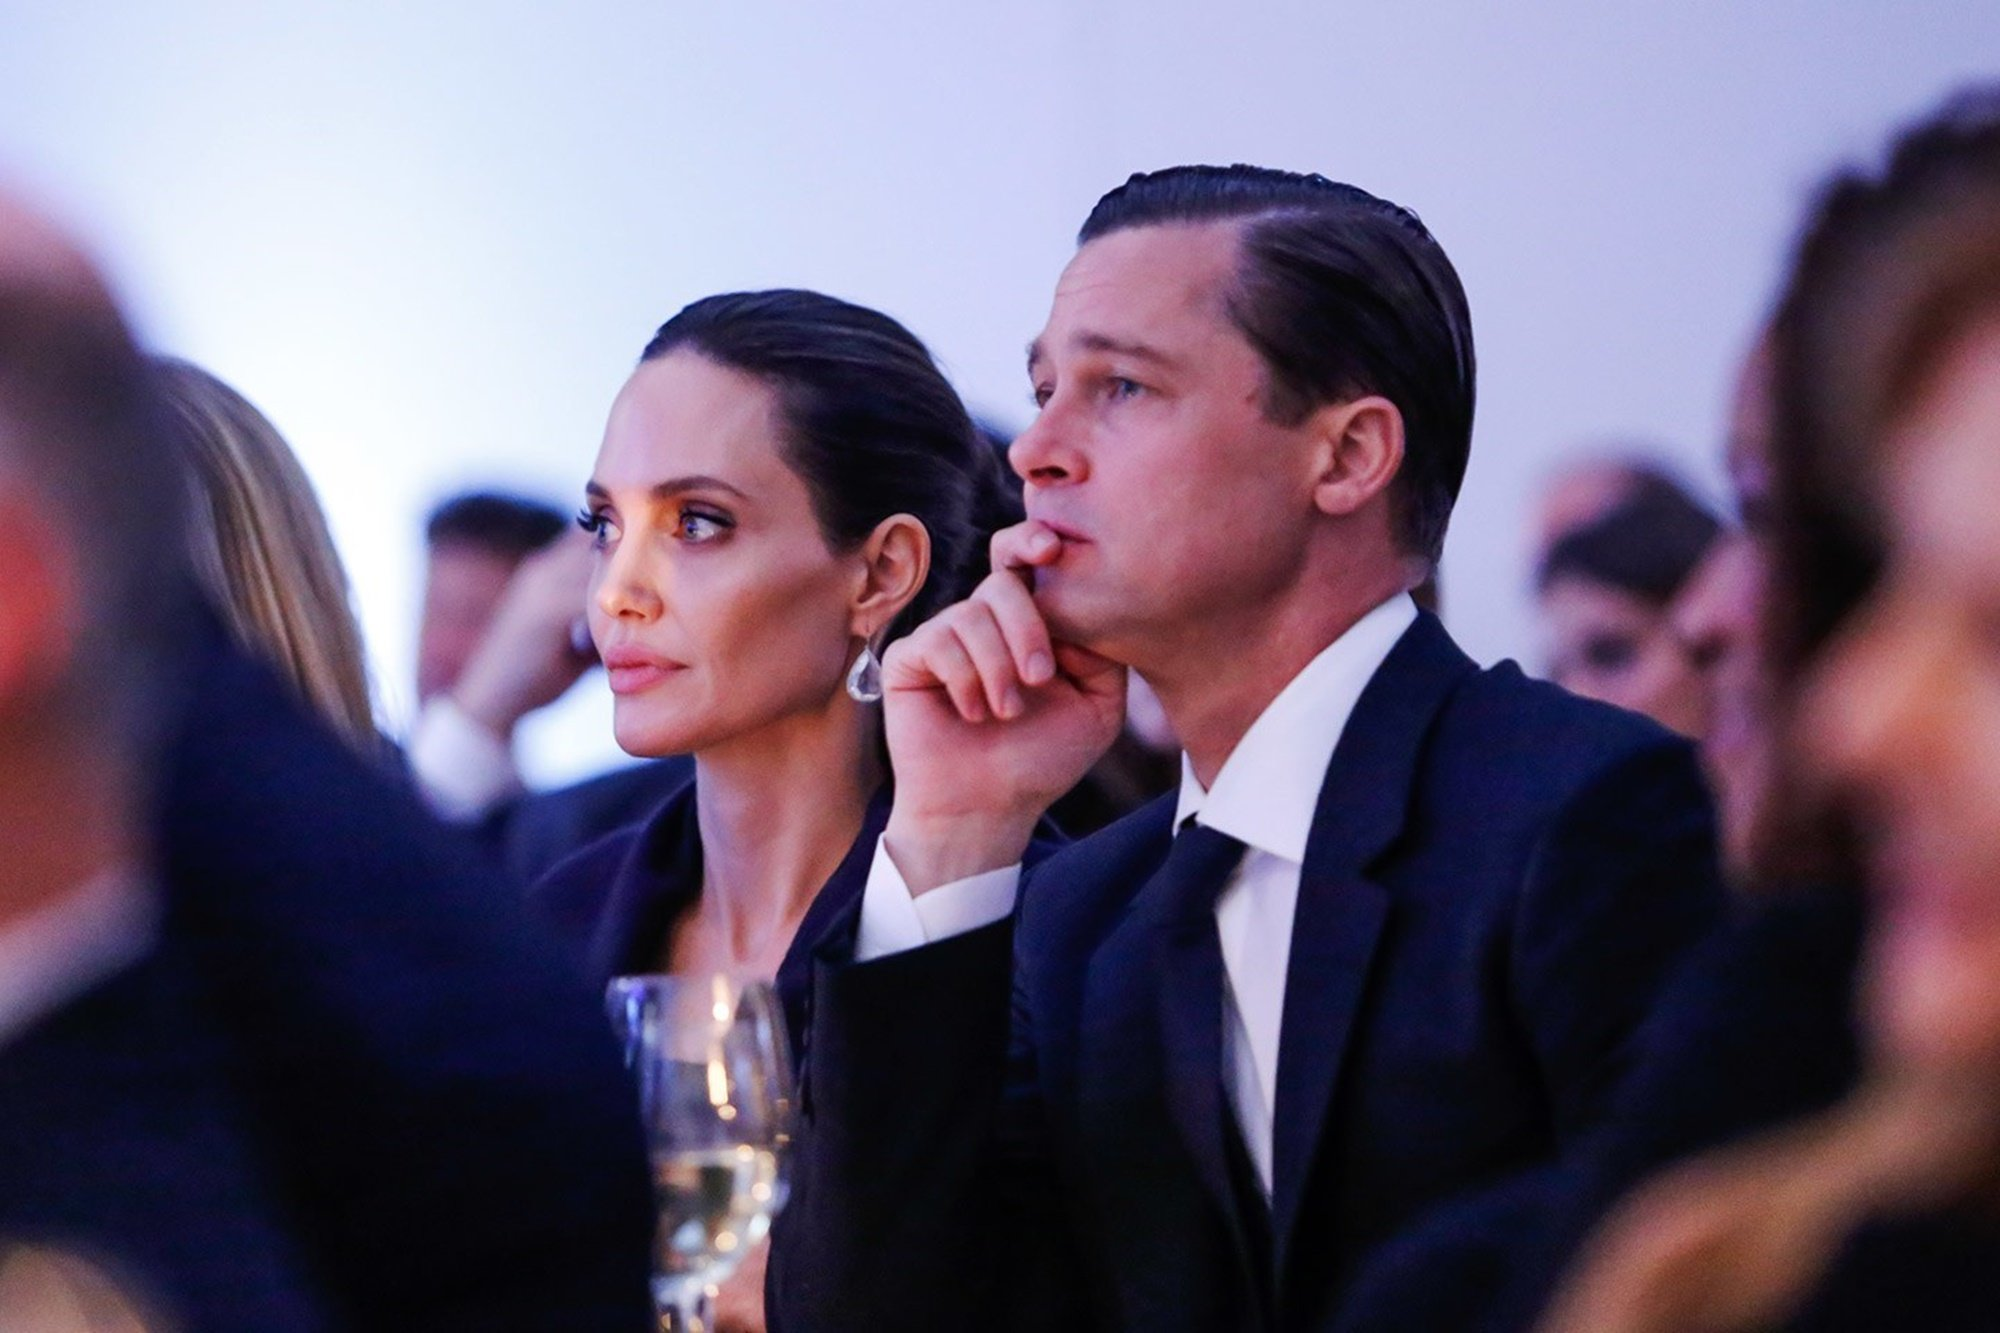 """""""tired-brad-pitt-wants-to-move-on-from-complicated-angelina-jolie-divorce-her-is-what-explains-tension-in-their-recent-pictures"""""""